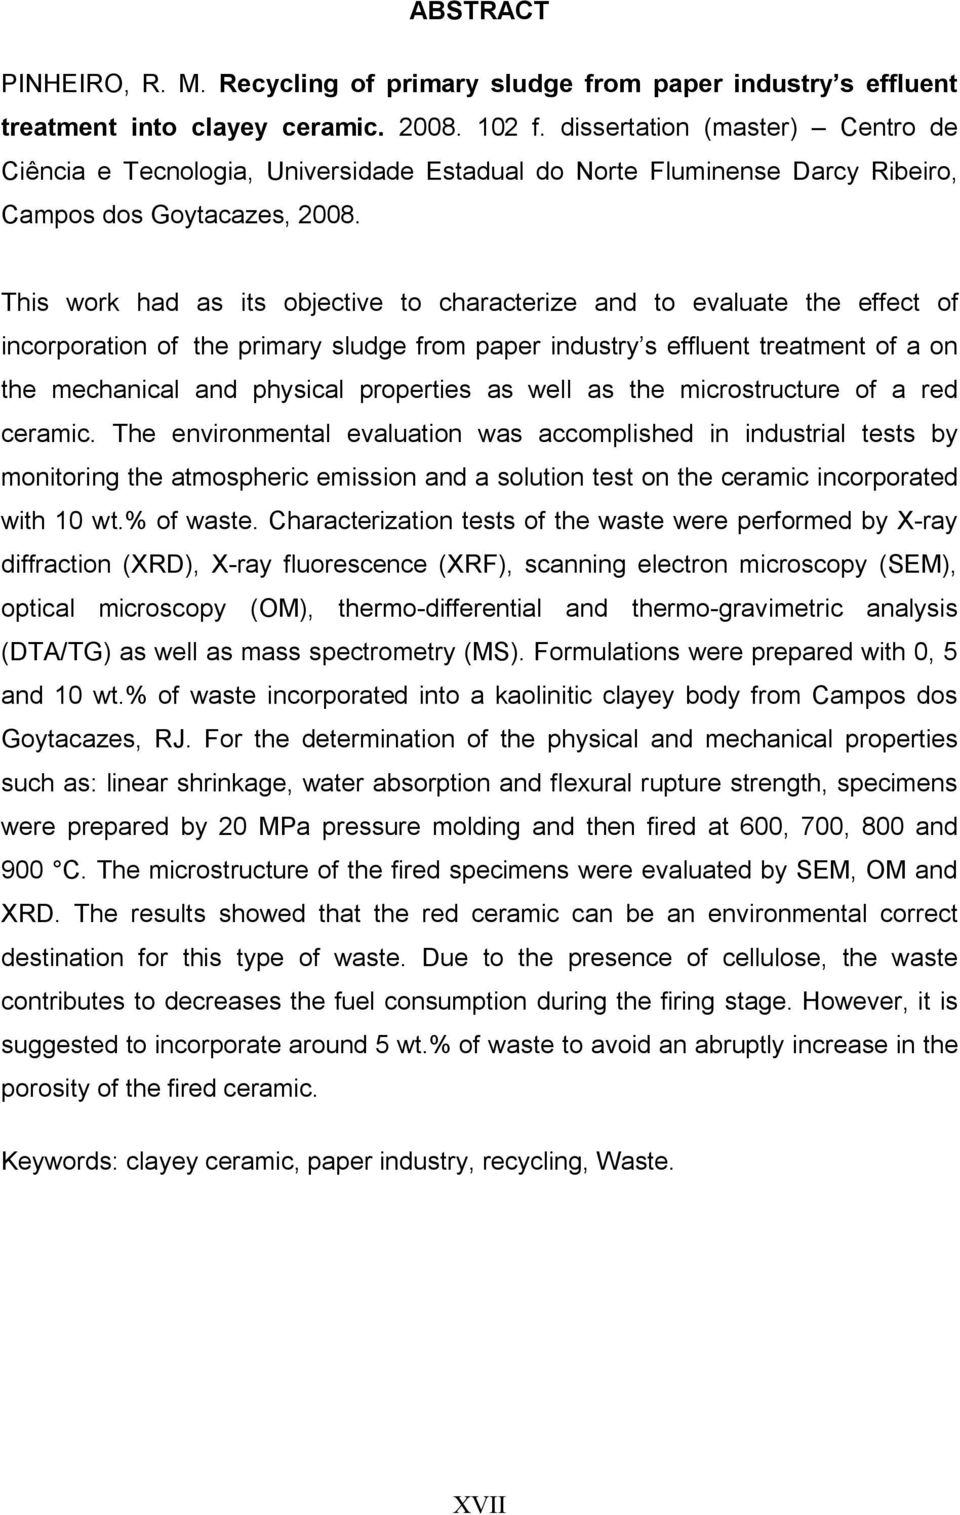 This work had as its objective to characterize and to evaluate the effect of incorporation of the primary sludge from paper industry s effluent treatment of a on the mechanical and physical